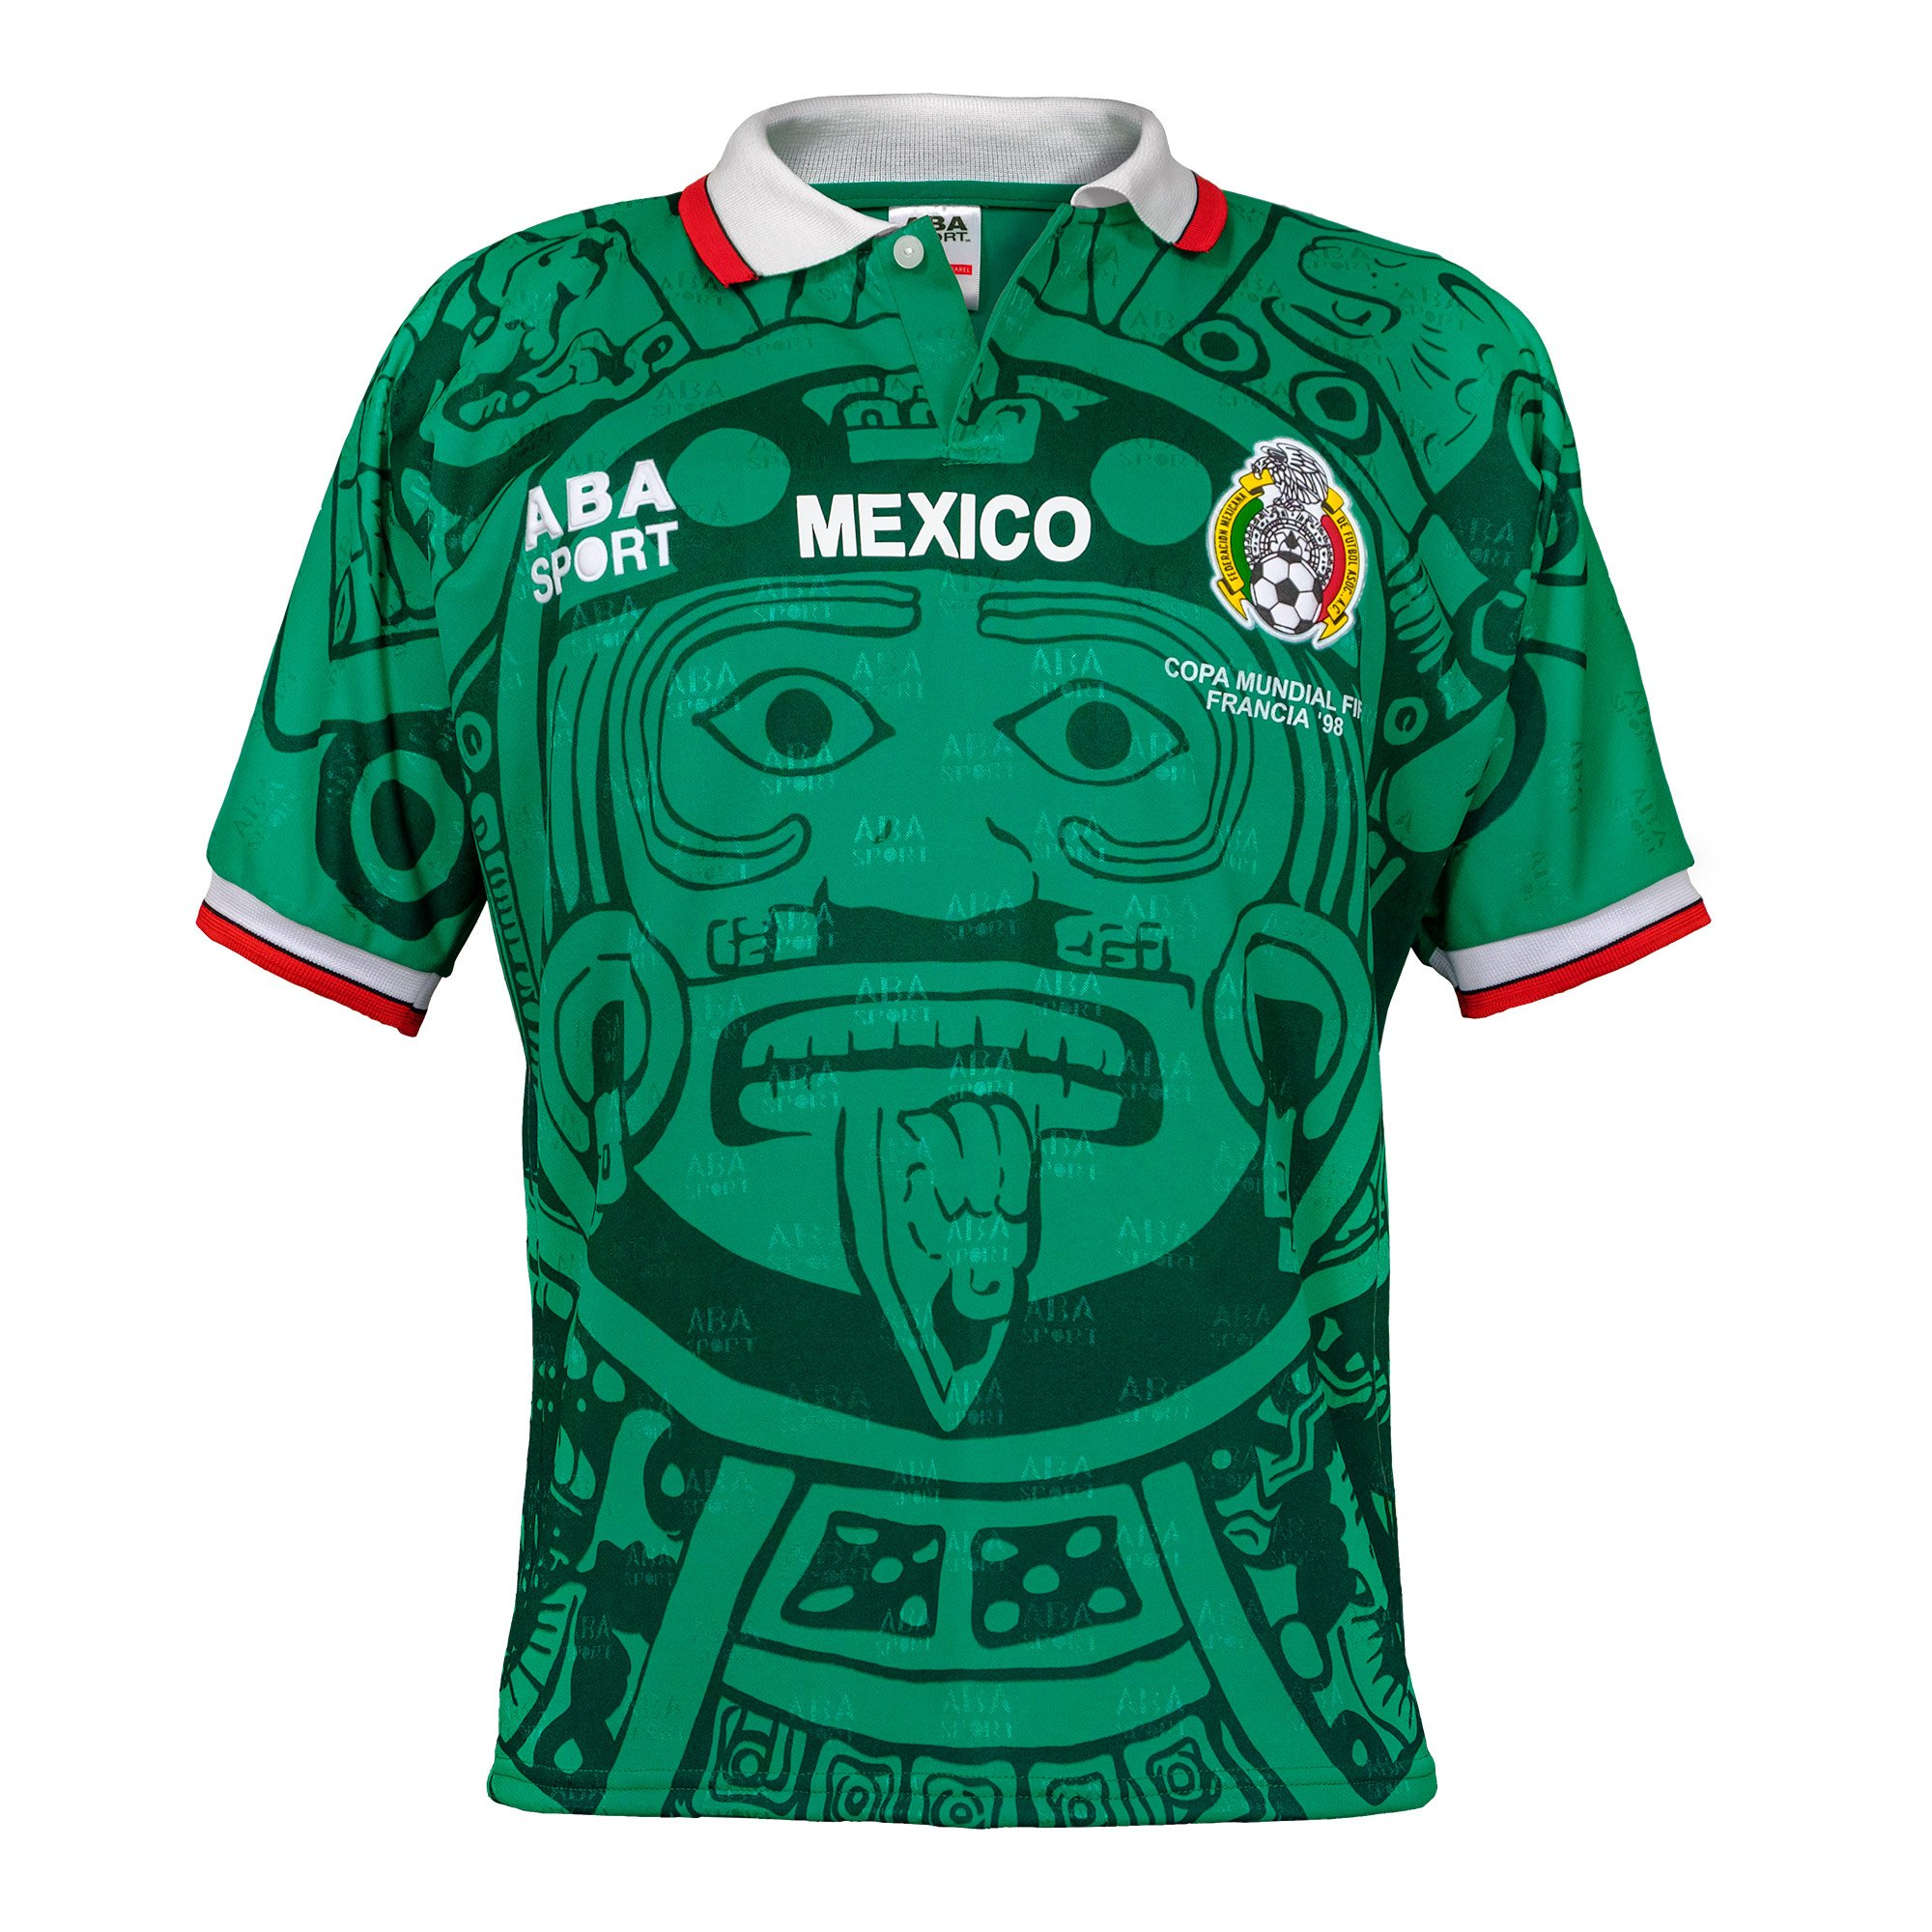 Amazon.com  ABA Sport Mexico Authentic 1998 World Cup Soccer Jersey   Clothing d614a9ebdf3ce